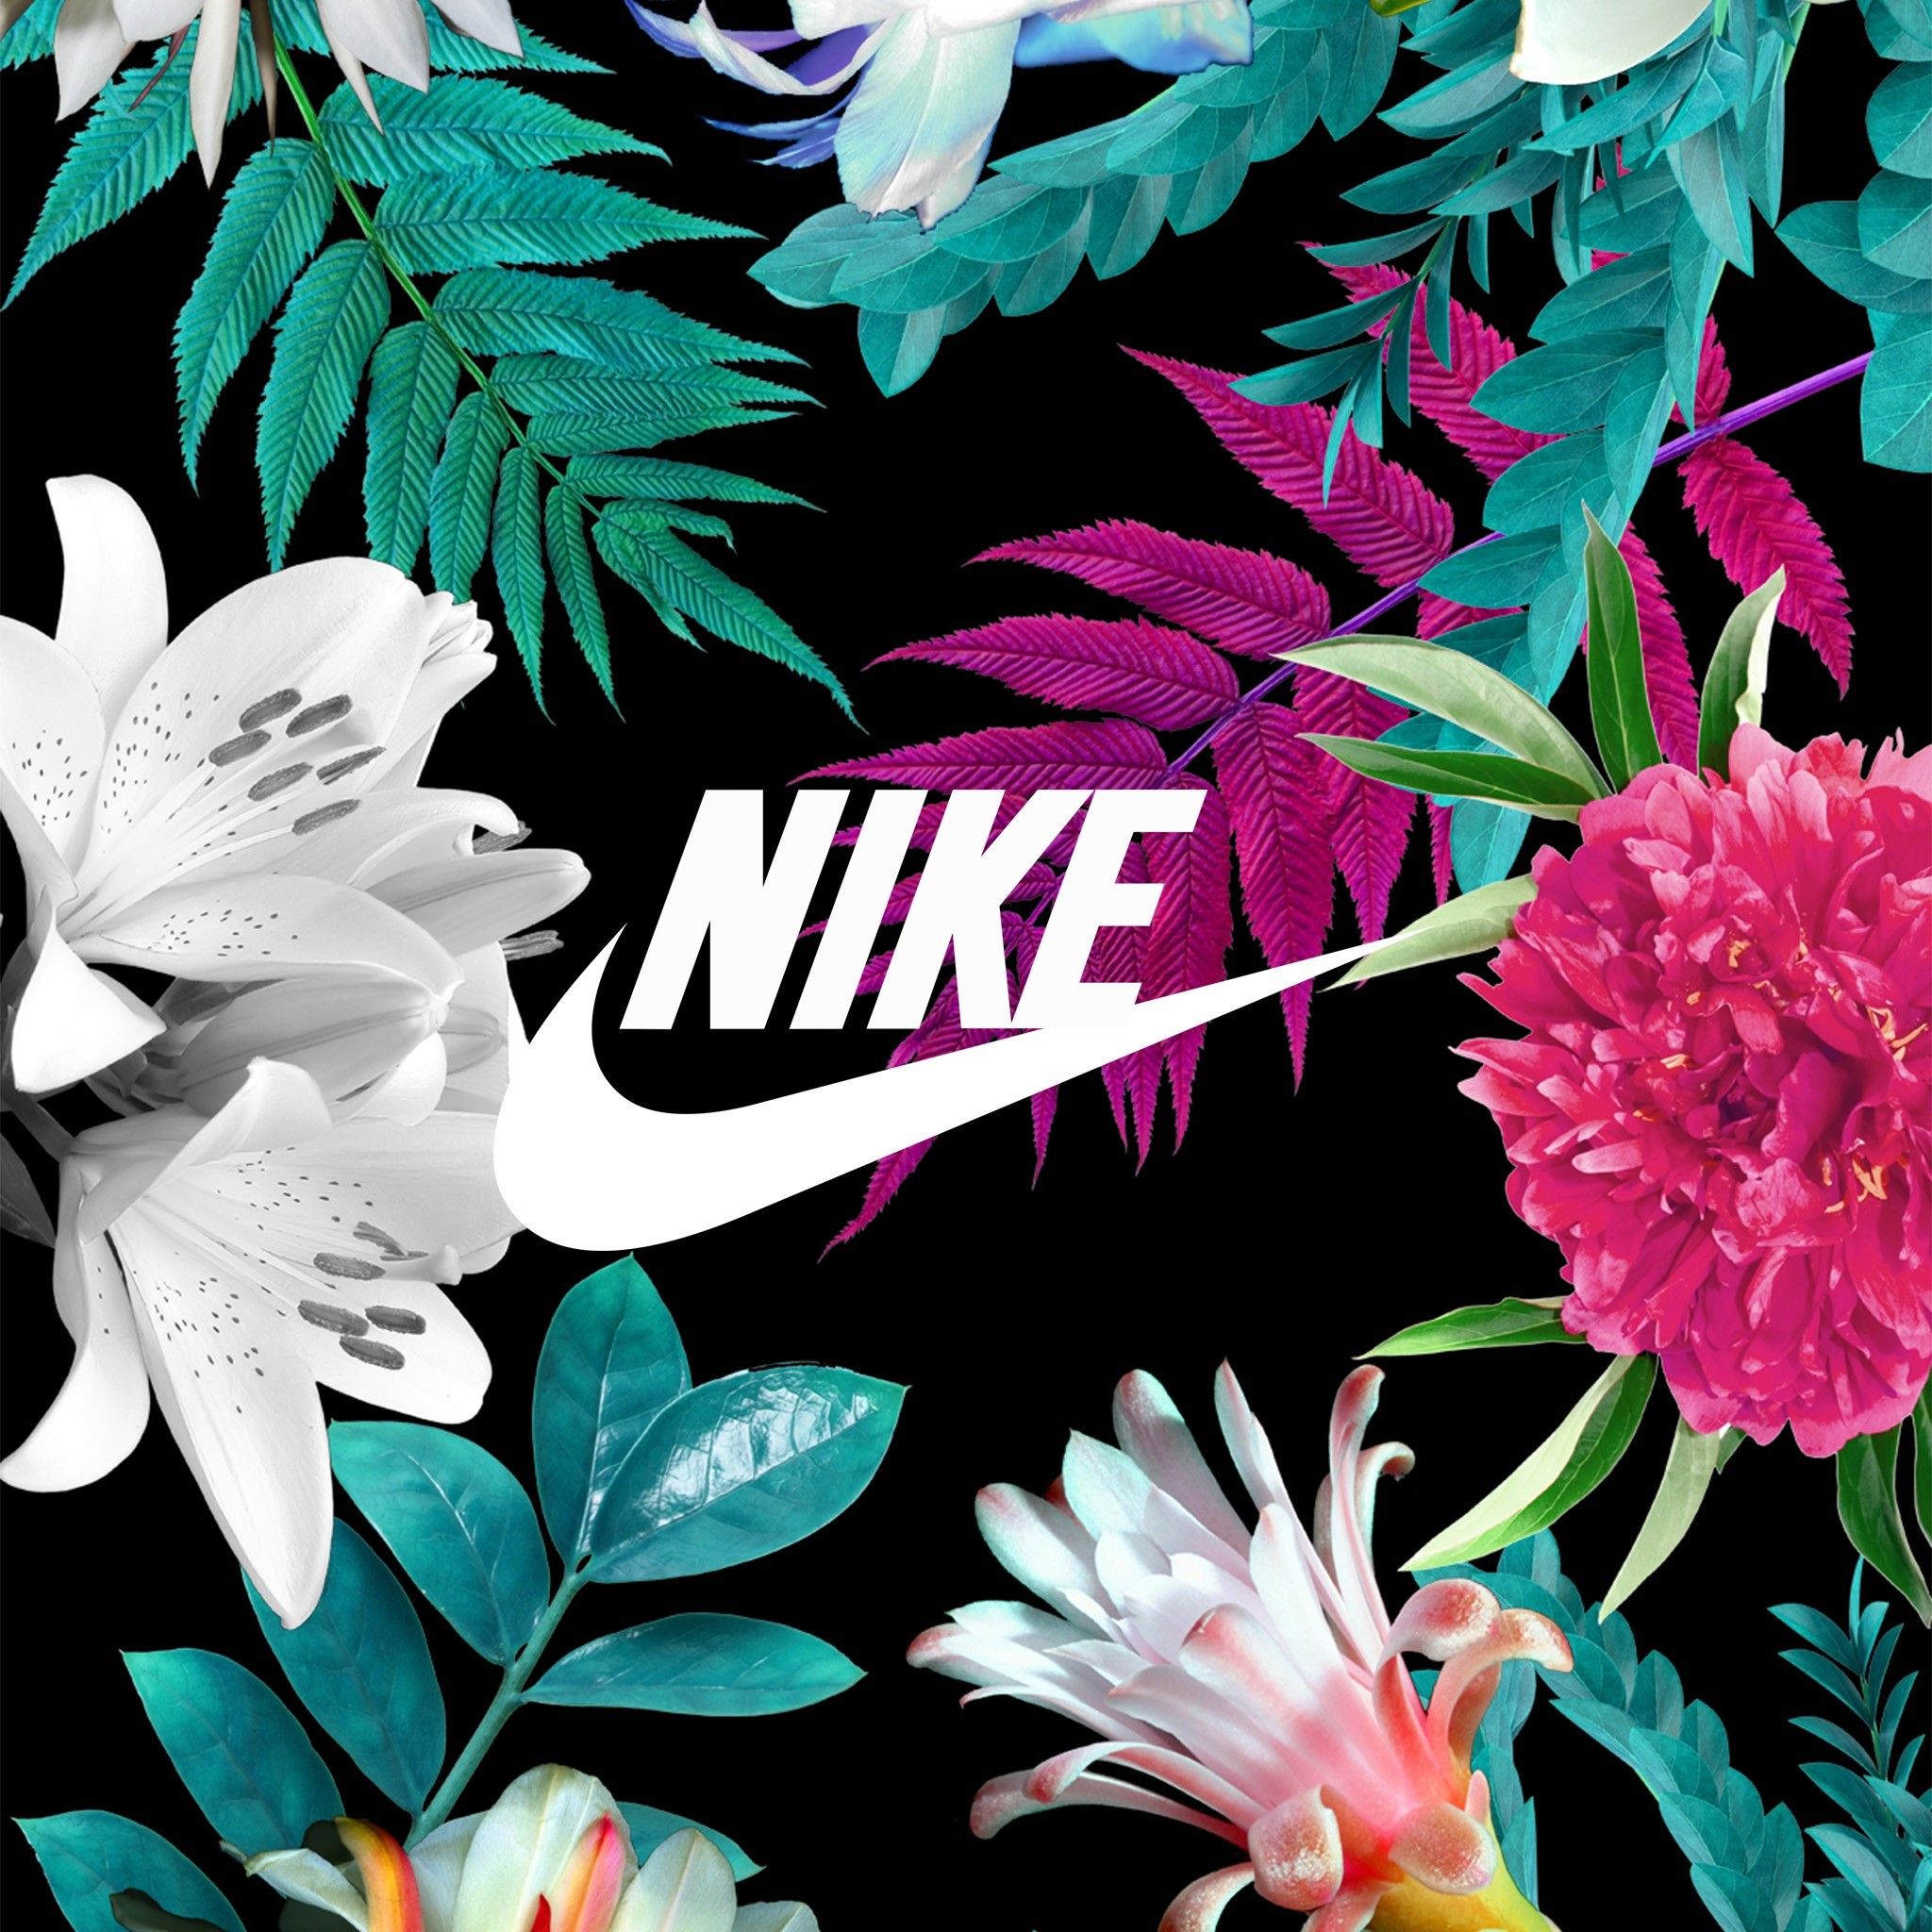 Nike with them flowers 🕶